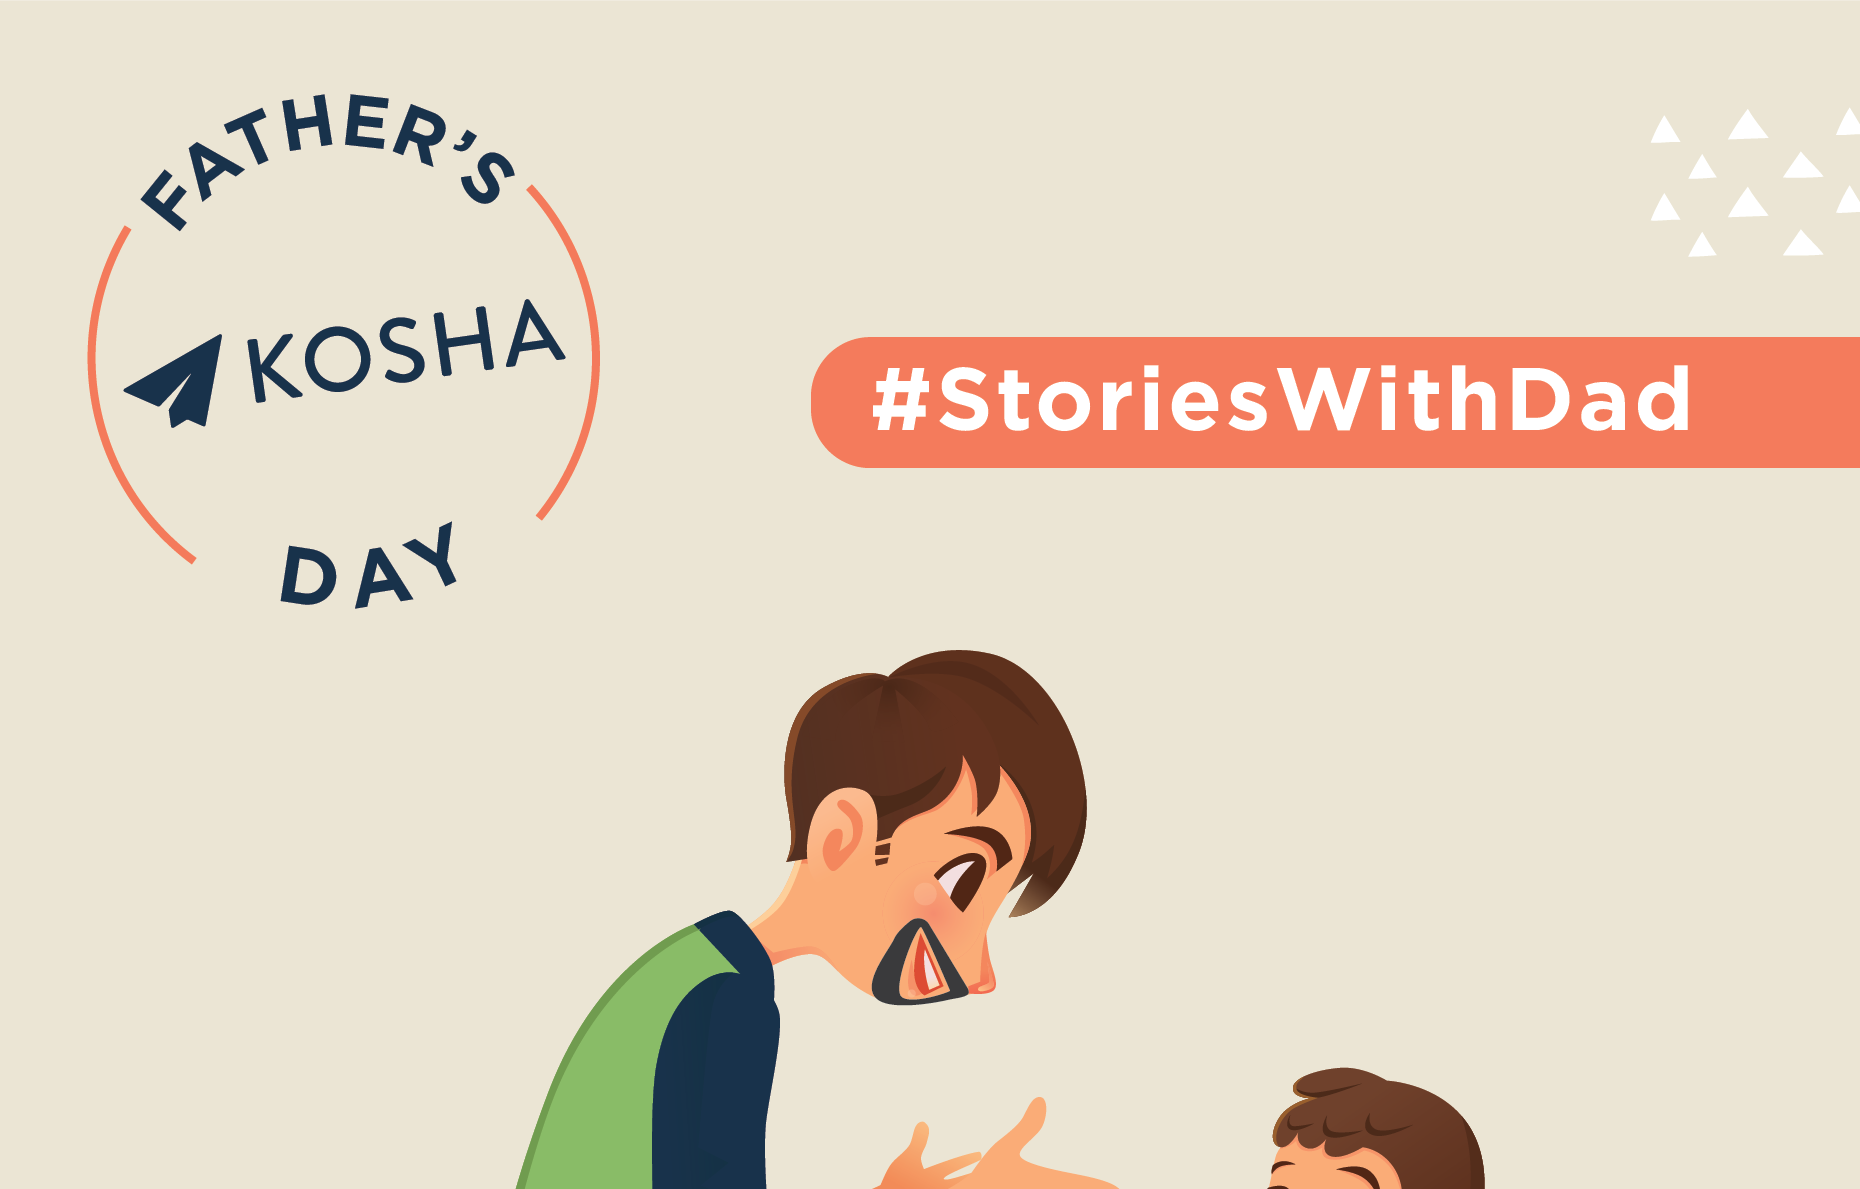 Make new #StoriesWithDad Contest Alert!